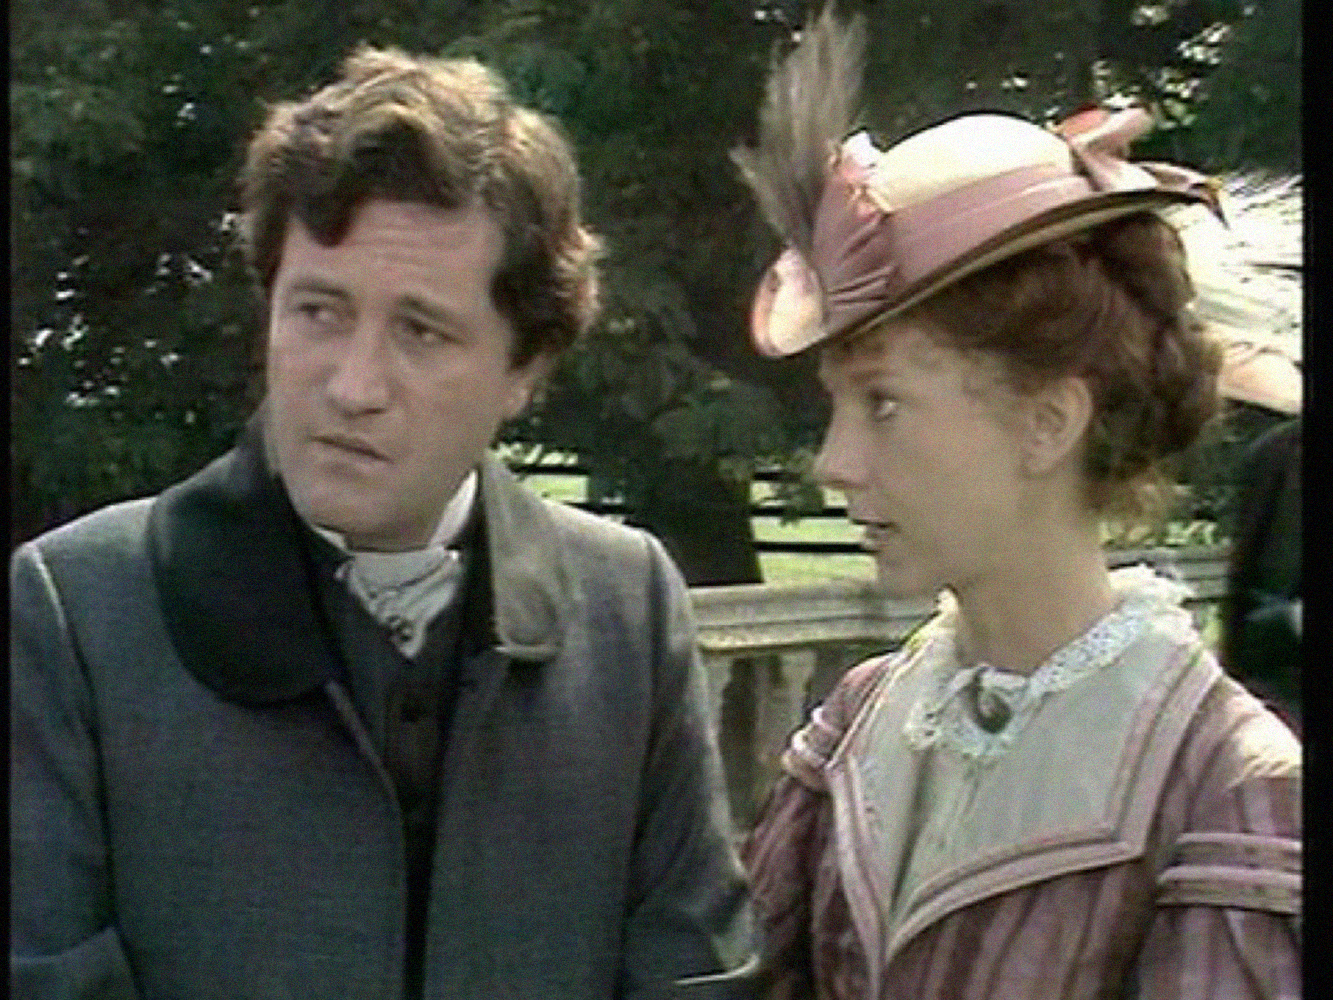 Donal McCann and Anna Massey as Phineas and Lady Laura in the 1974 BBC adaptation of Trollope's Palliser novels